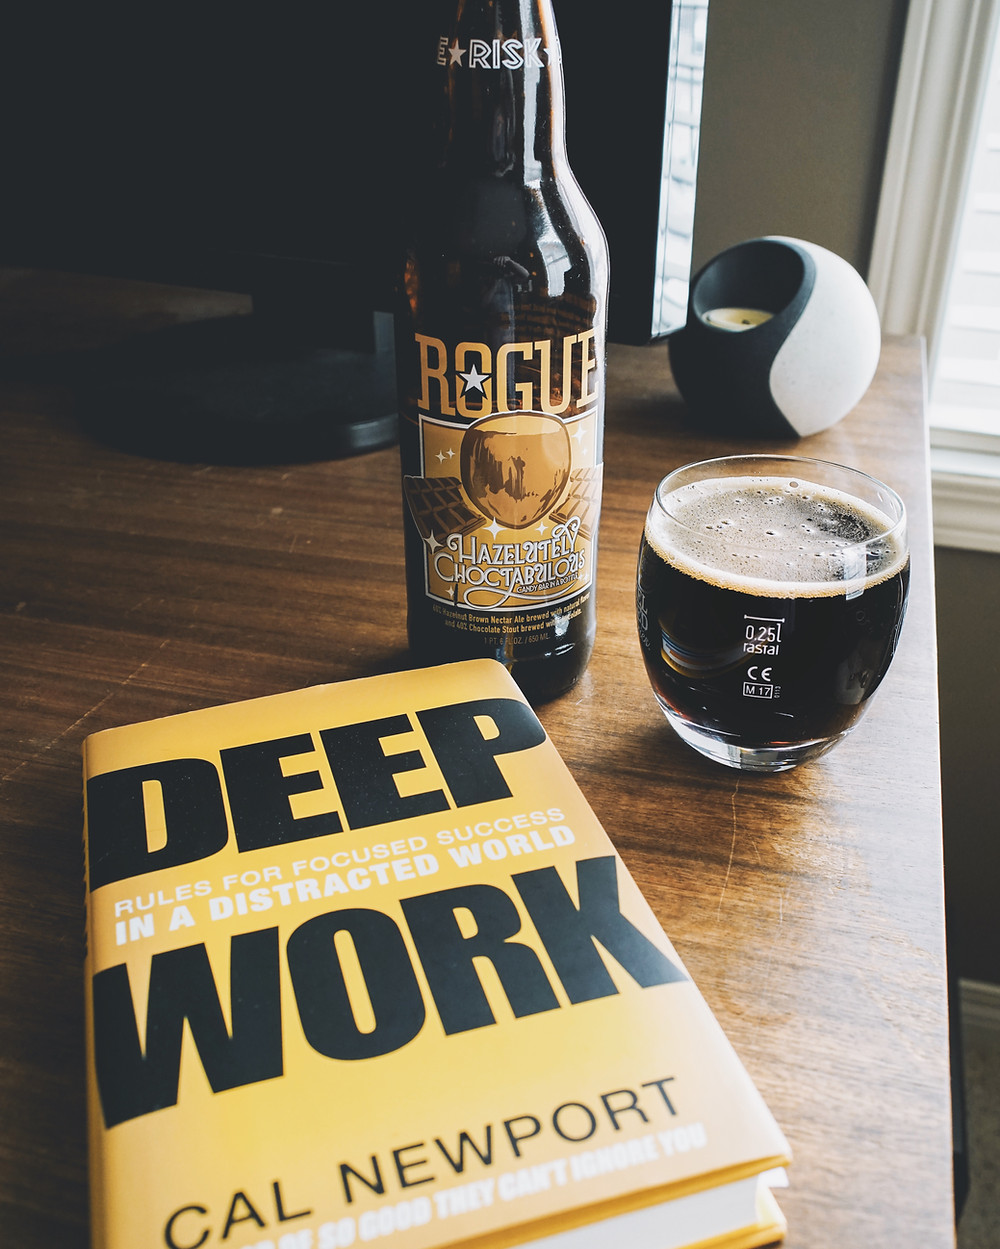 Rogue Ales Hazelutely Choctabulous & Cal Newport's Deep Work